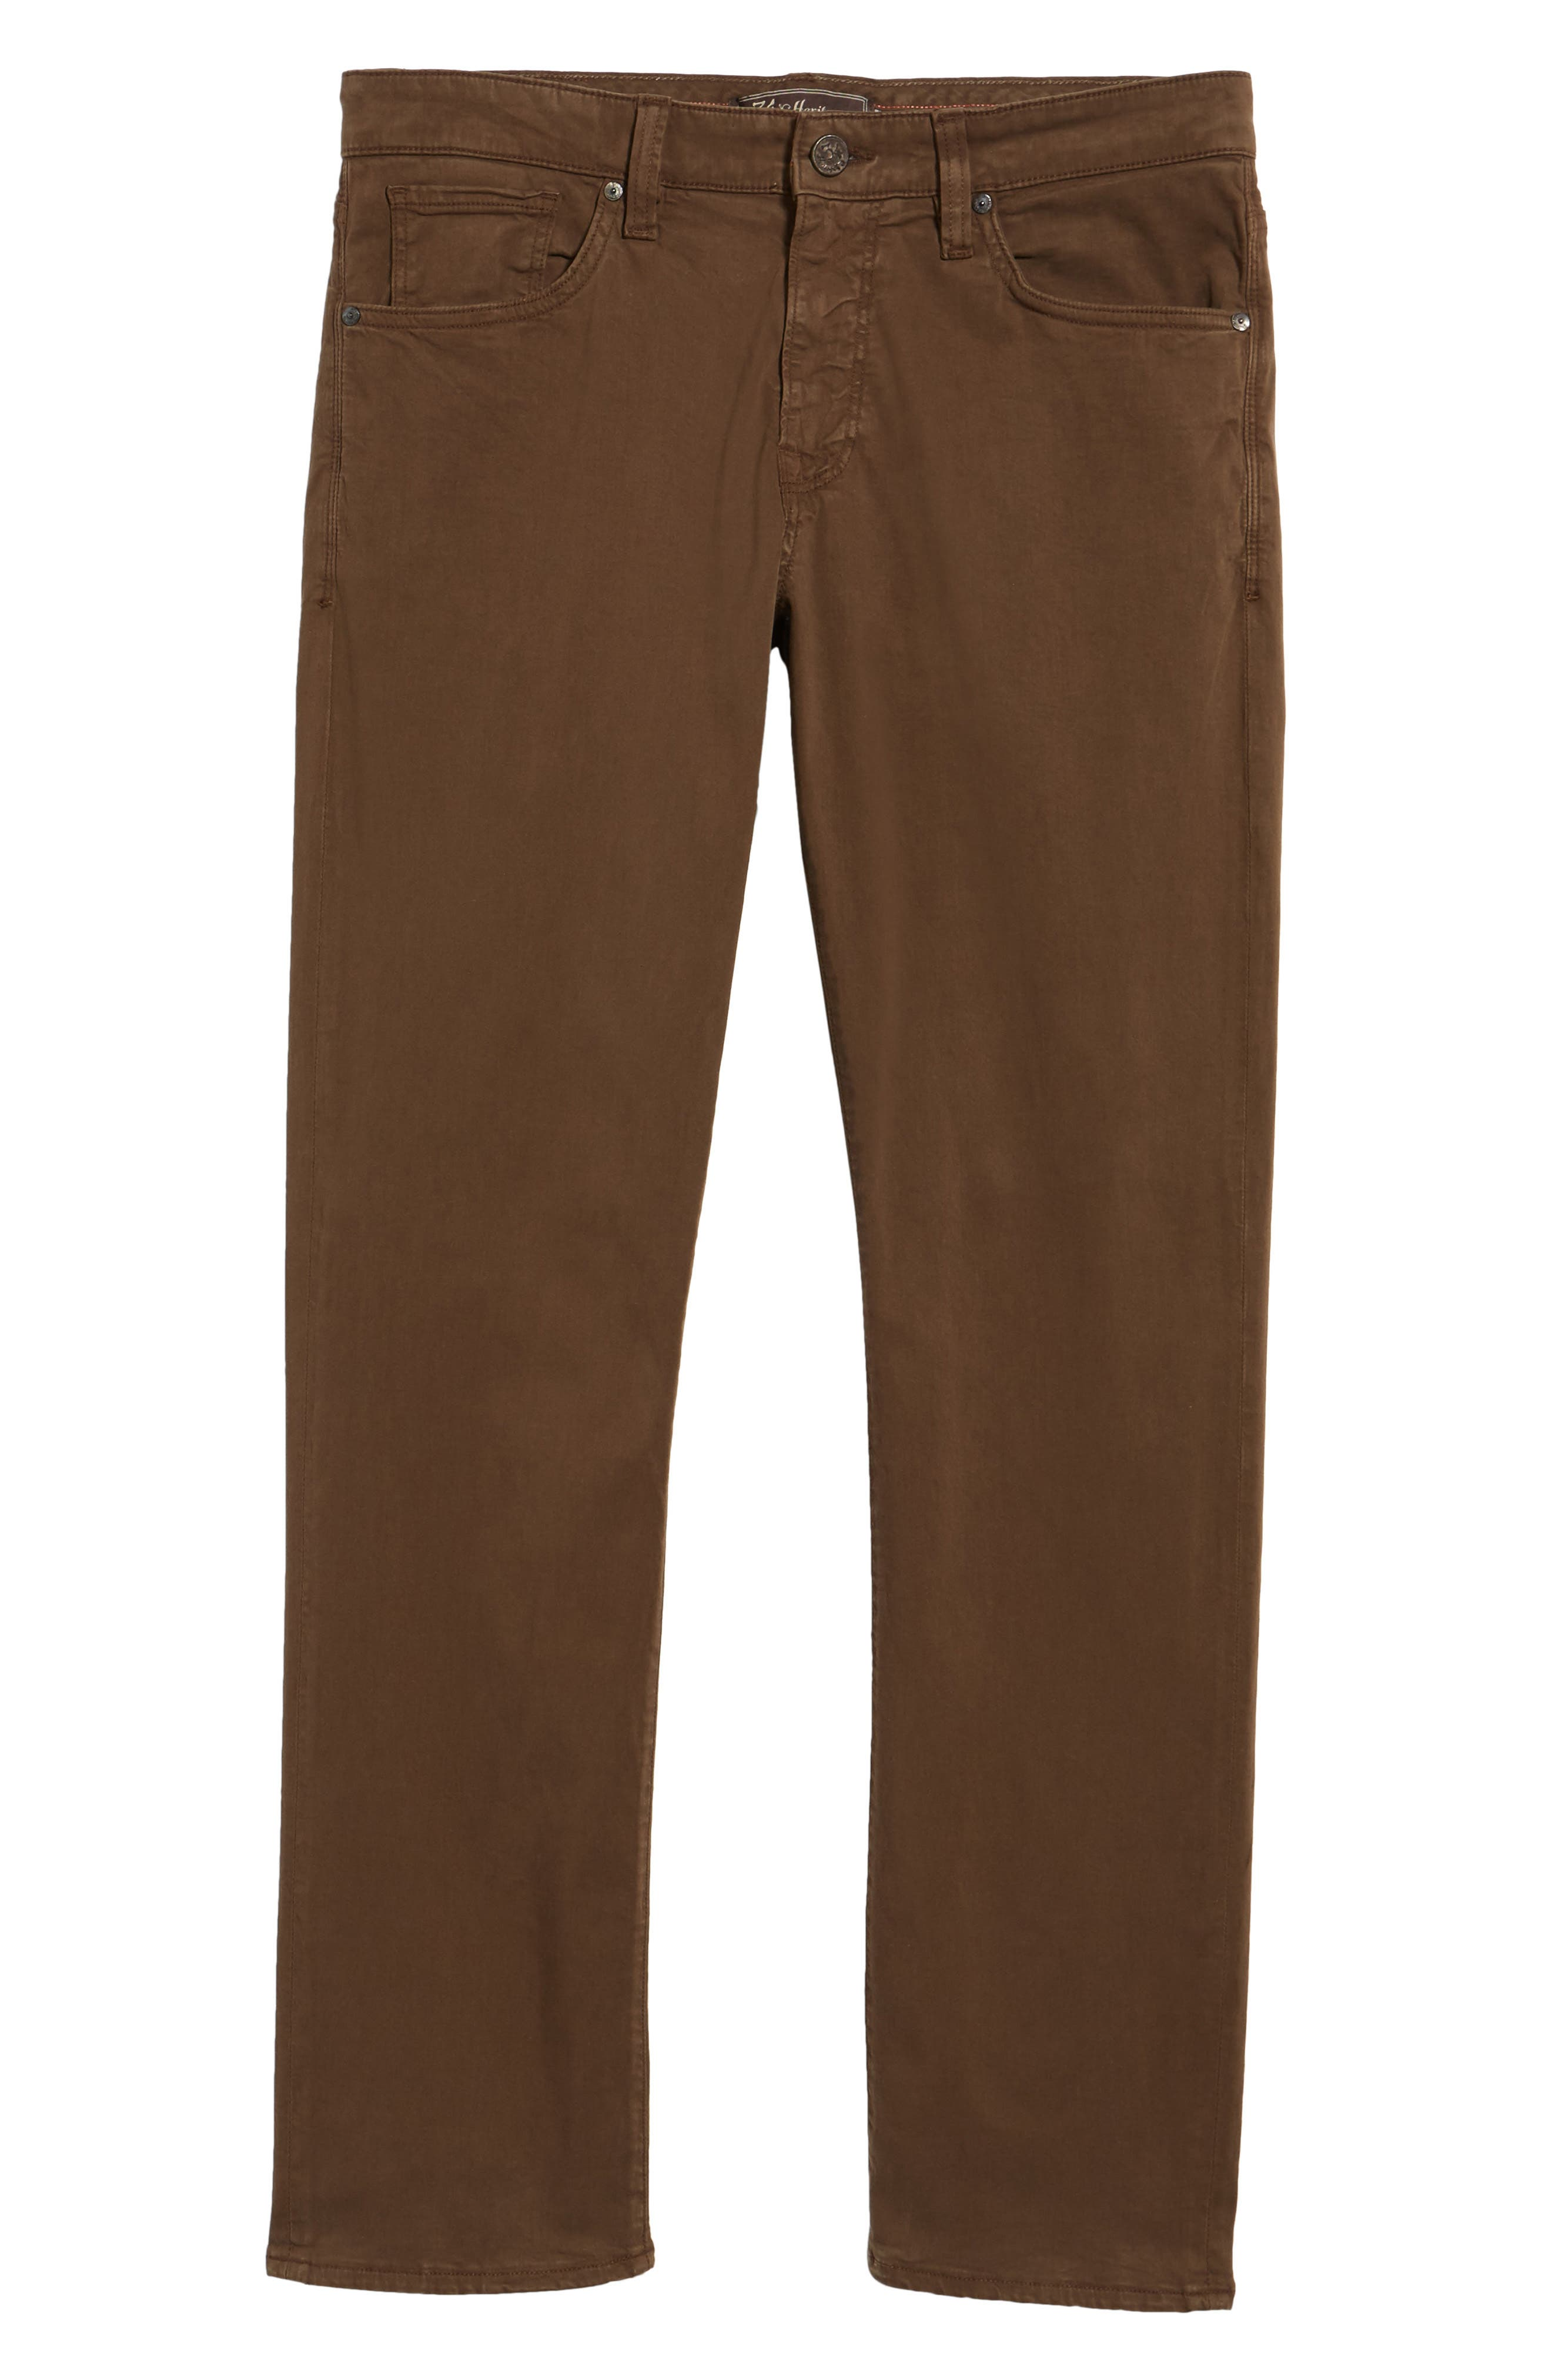 Courage Straight Leg Twill Pants,                             Alternate thumbnail 6, color,                             200